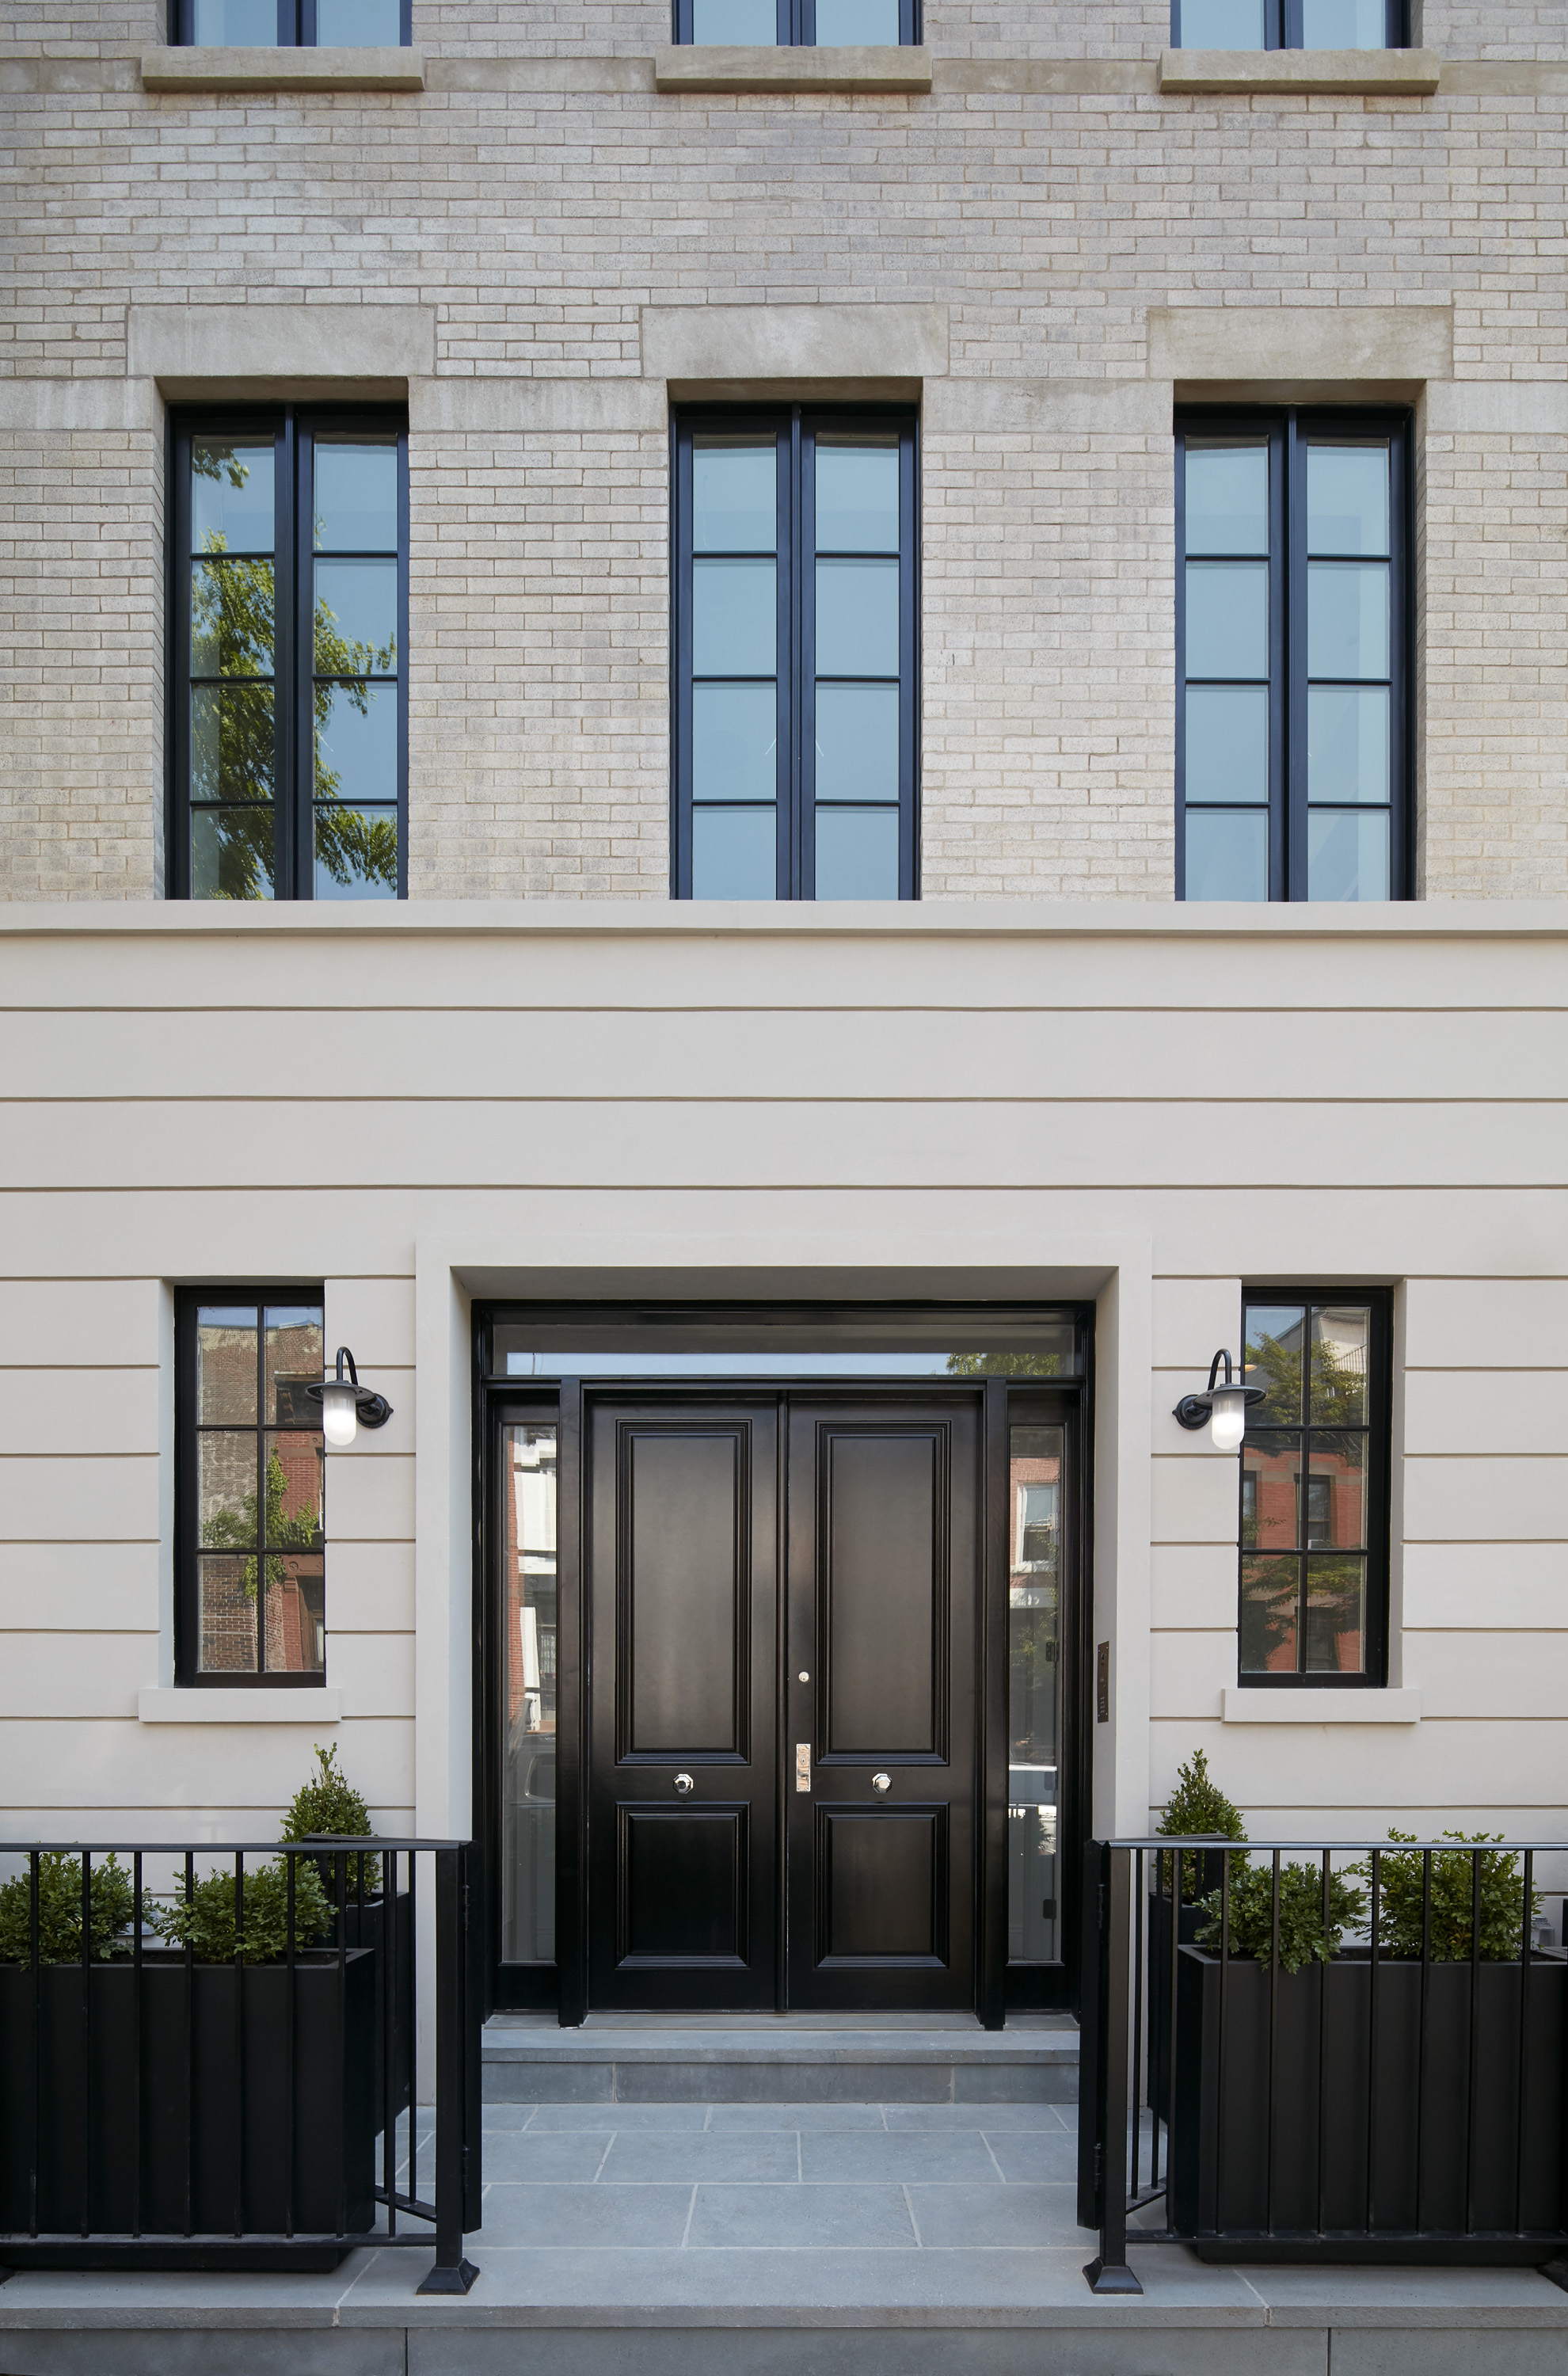 tbhco 1706 56garfieldplace 718 hires